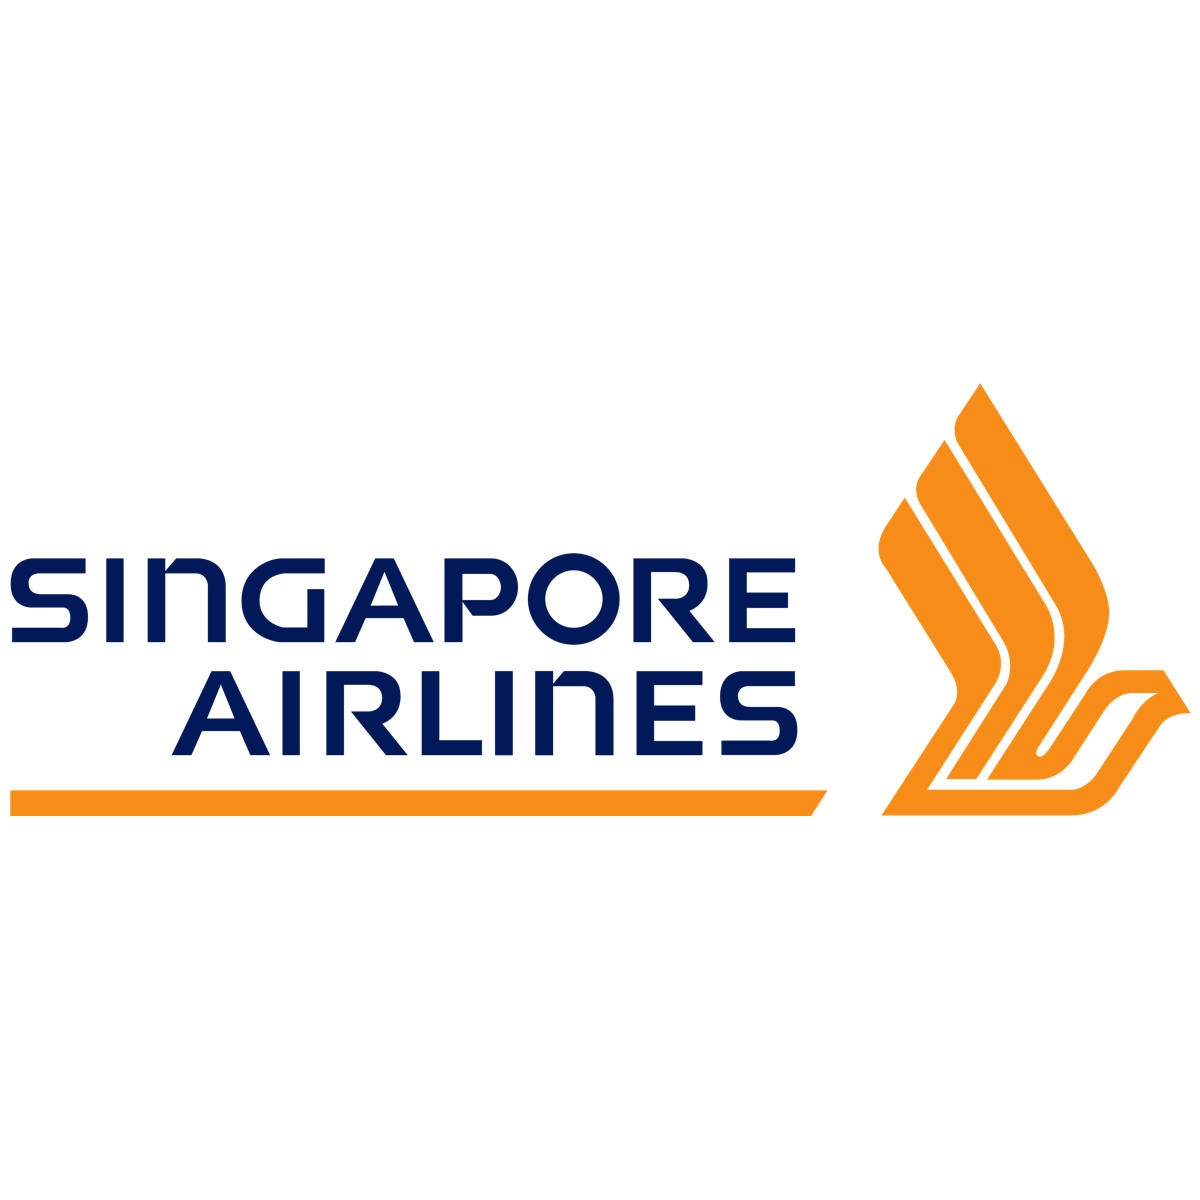 Singapore Airlines - CIMB Research 2018-01-22: Structural Reforms Accelerate; Cyclical Tailwinds Help